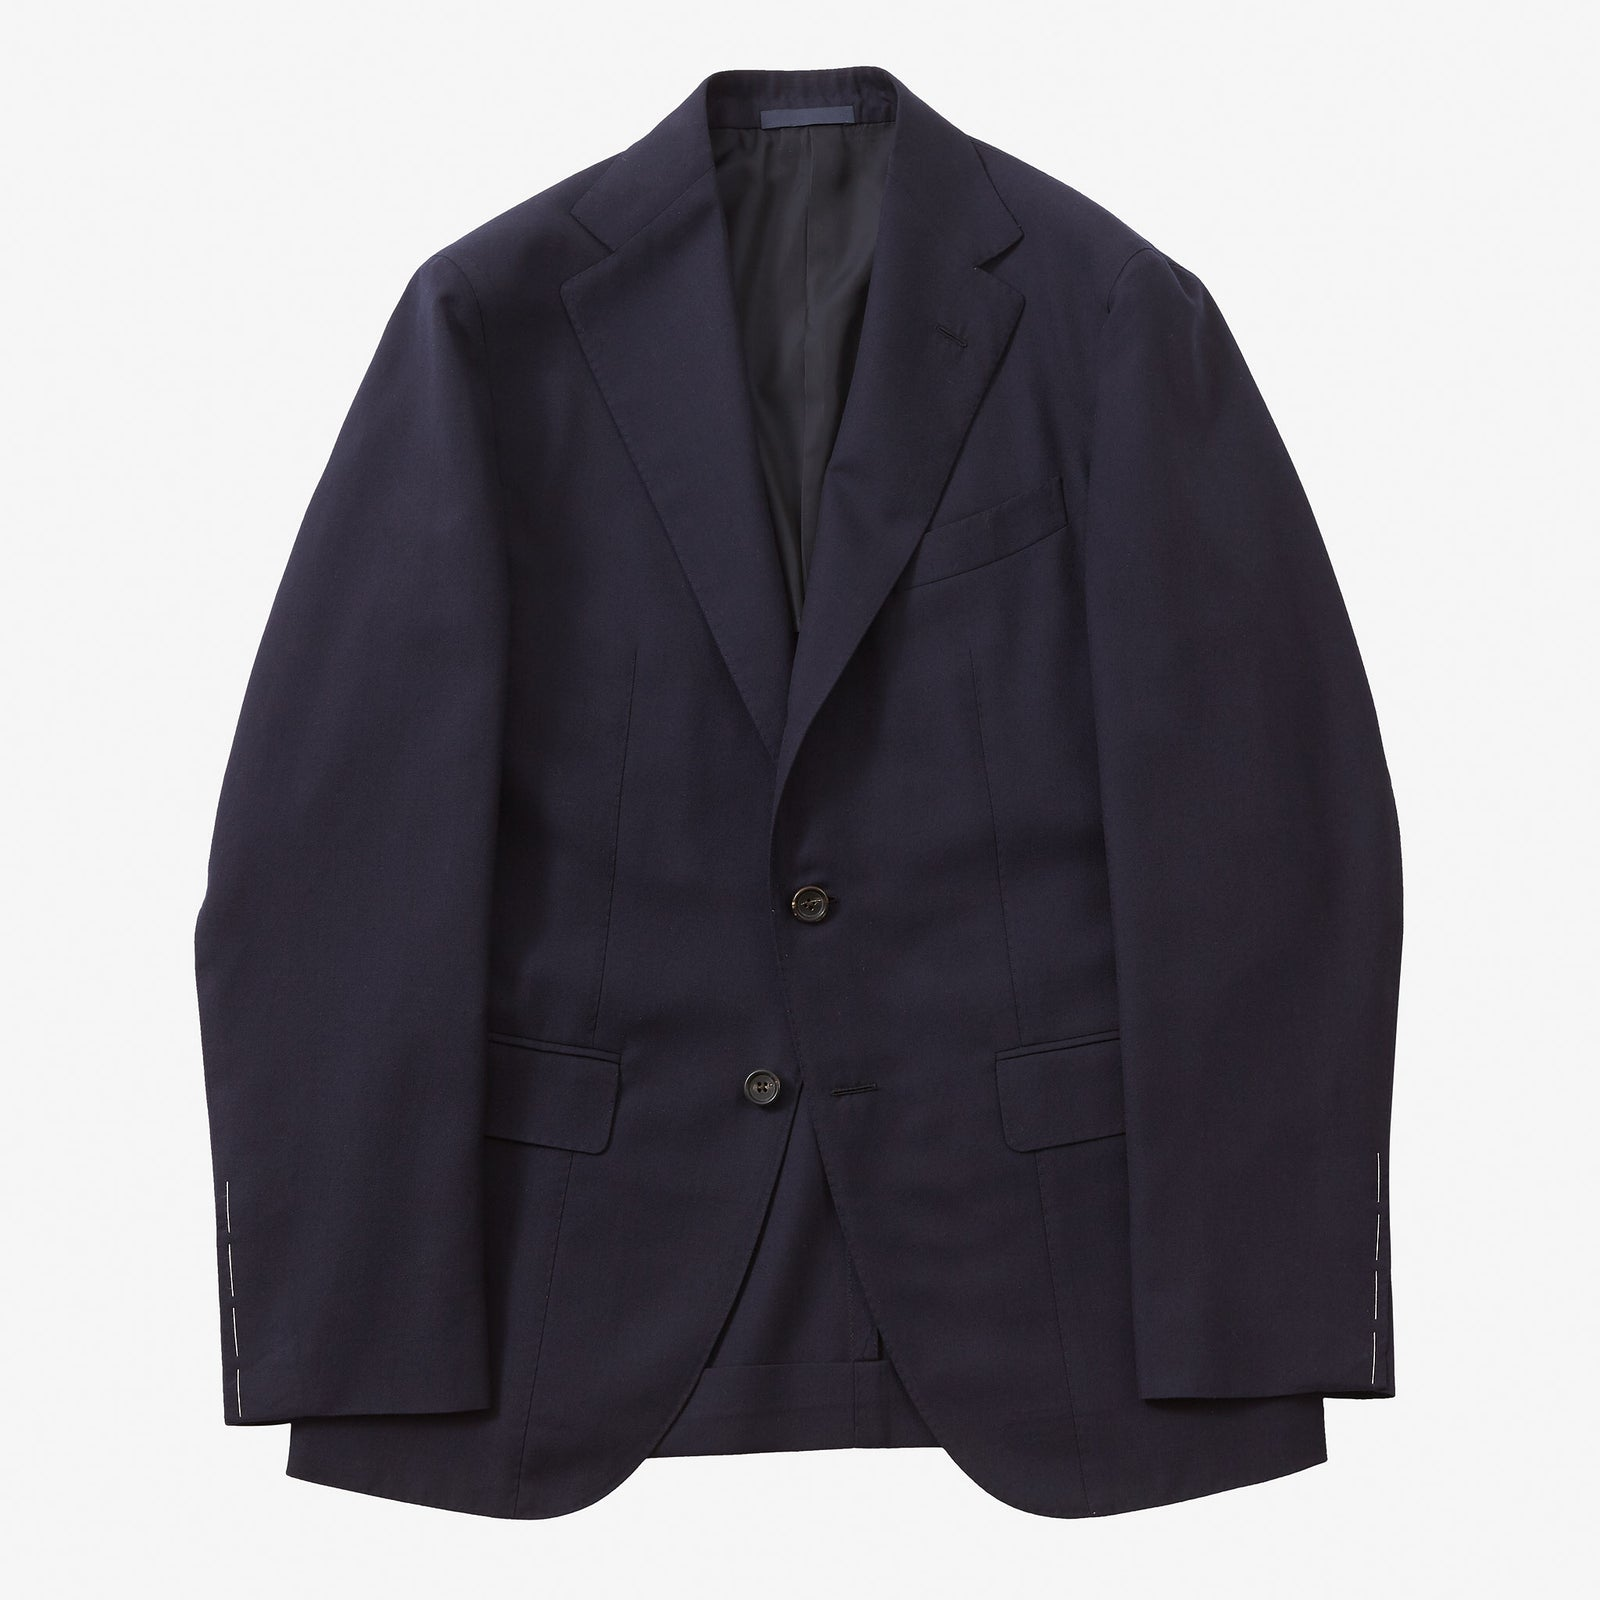 Single Breasted Suit House Wool Dark Navy